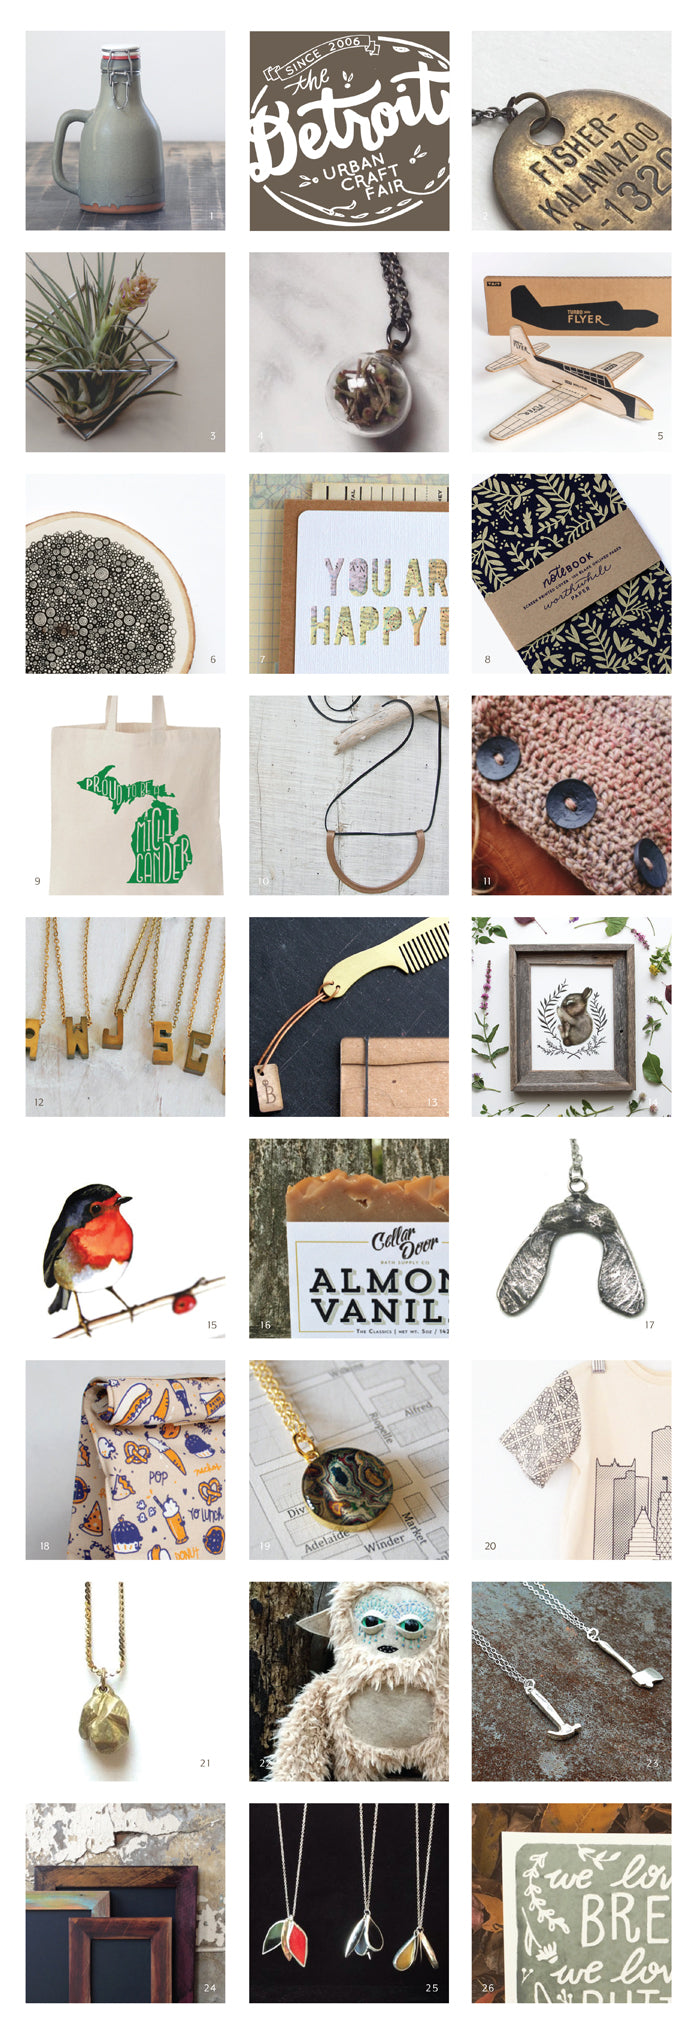 June & December's Detroit Urban Craft Fair Artist Spotlight List